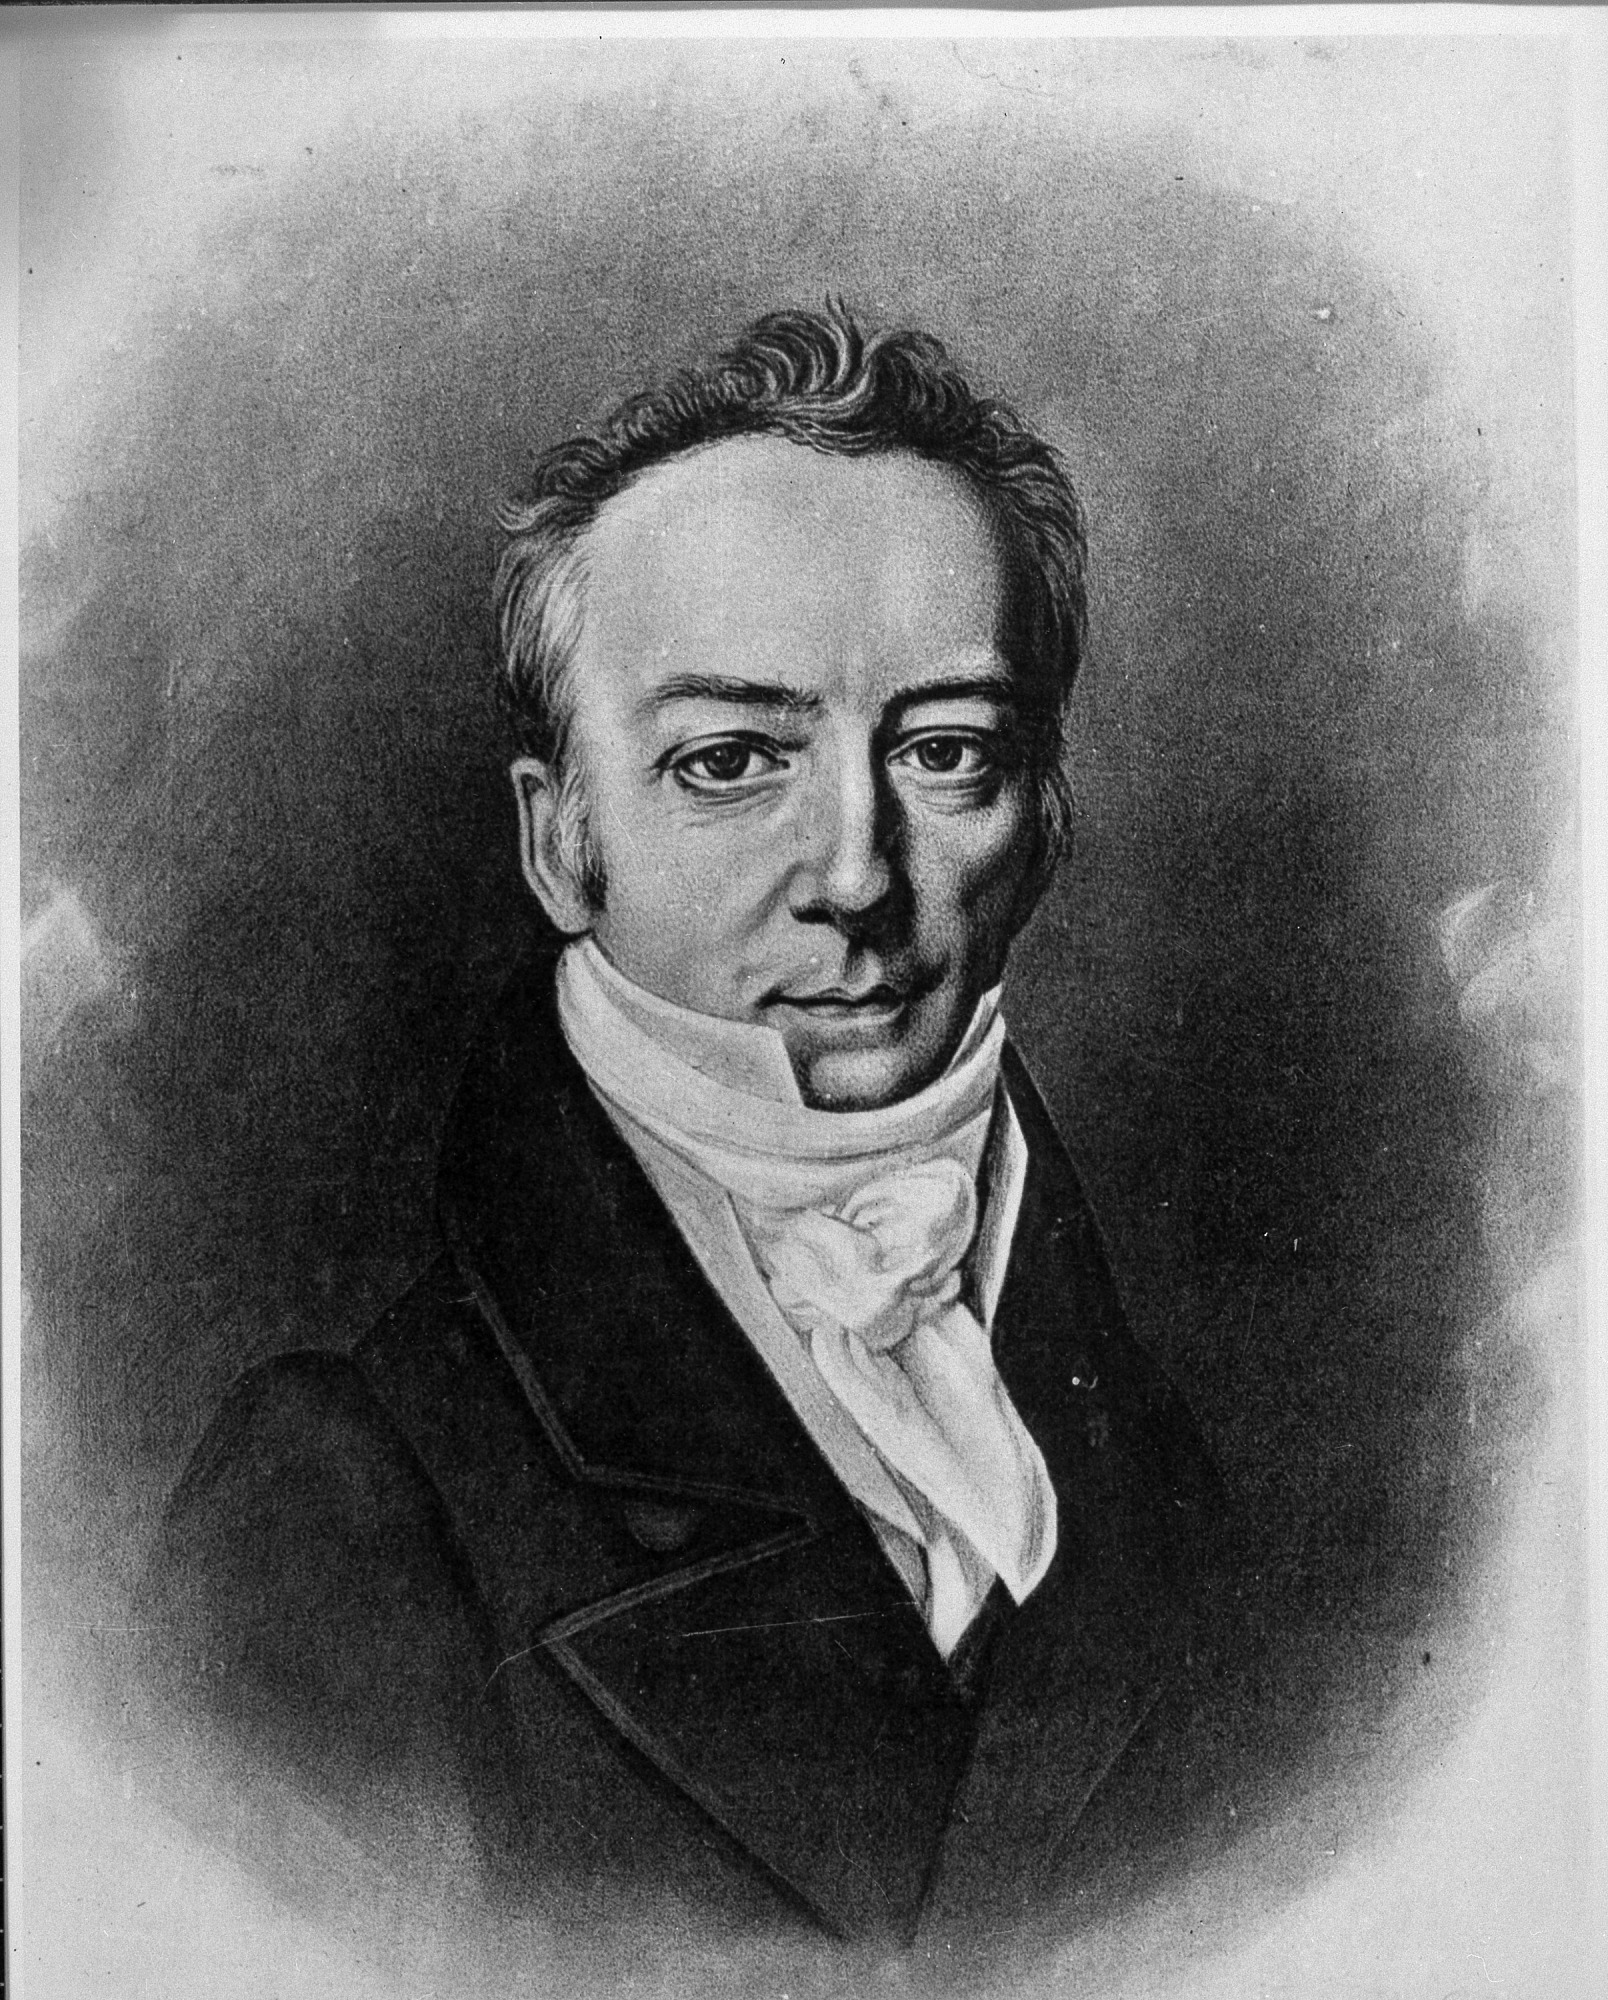 James Macie Changes His Name to Smithson, February 16, 1801, Smithsonian Archives - History Div.